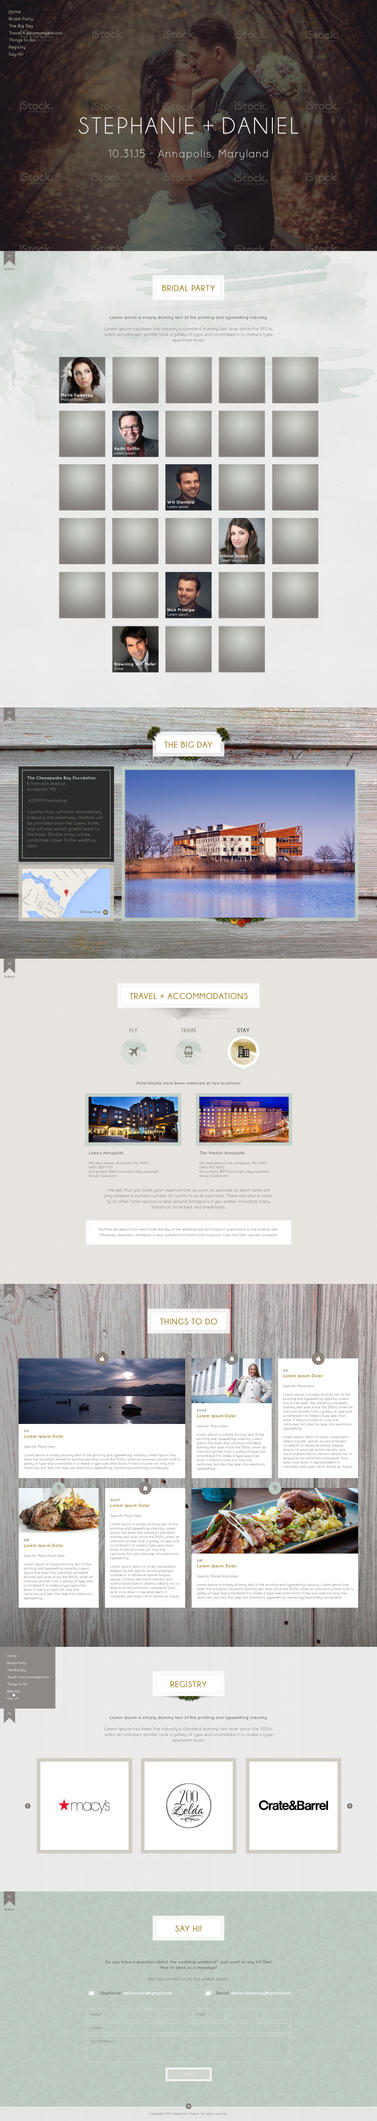 Web Page Design for a Wedding RSVP by bojok-mlsjr